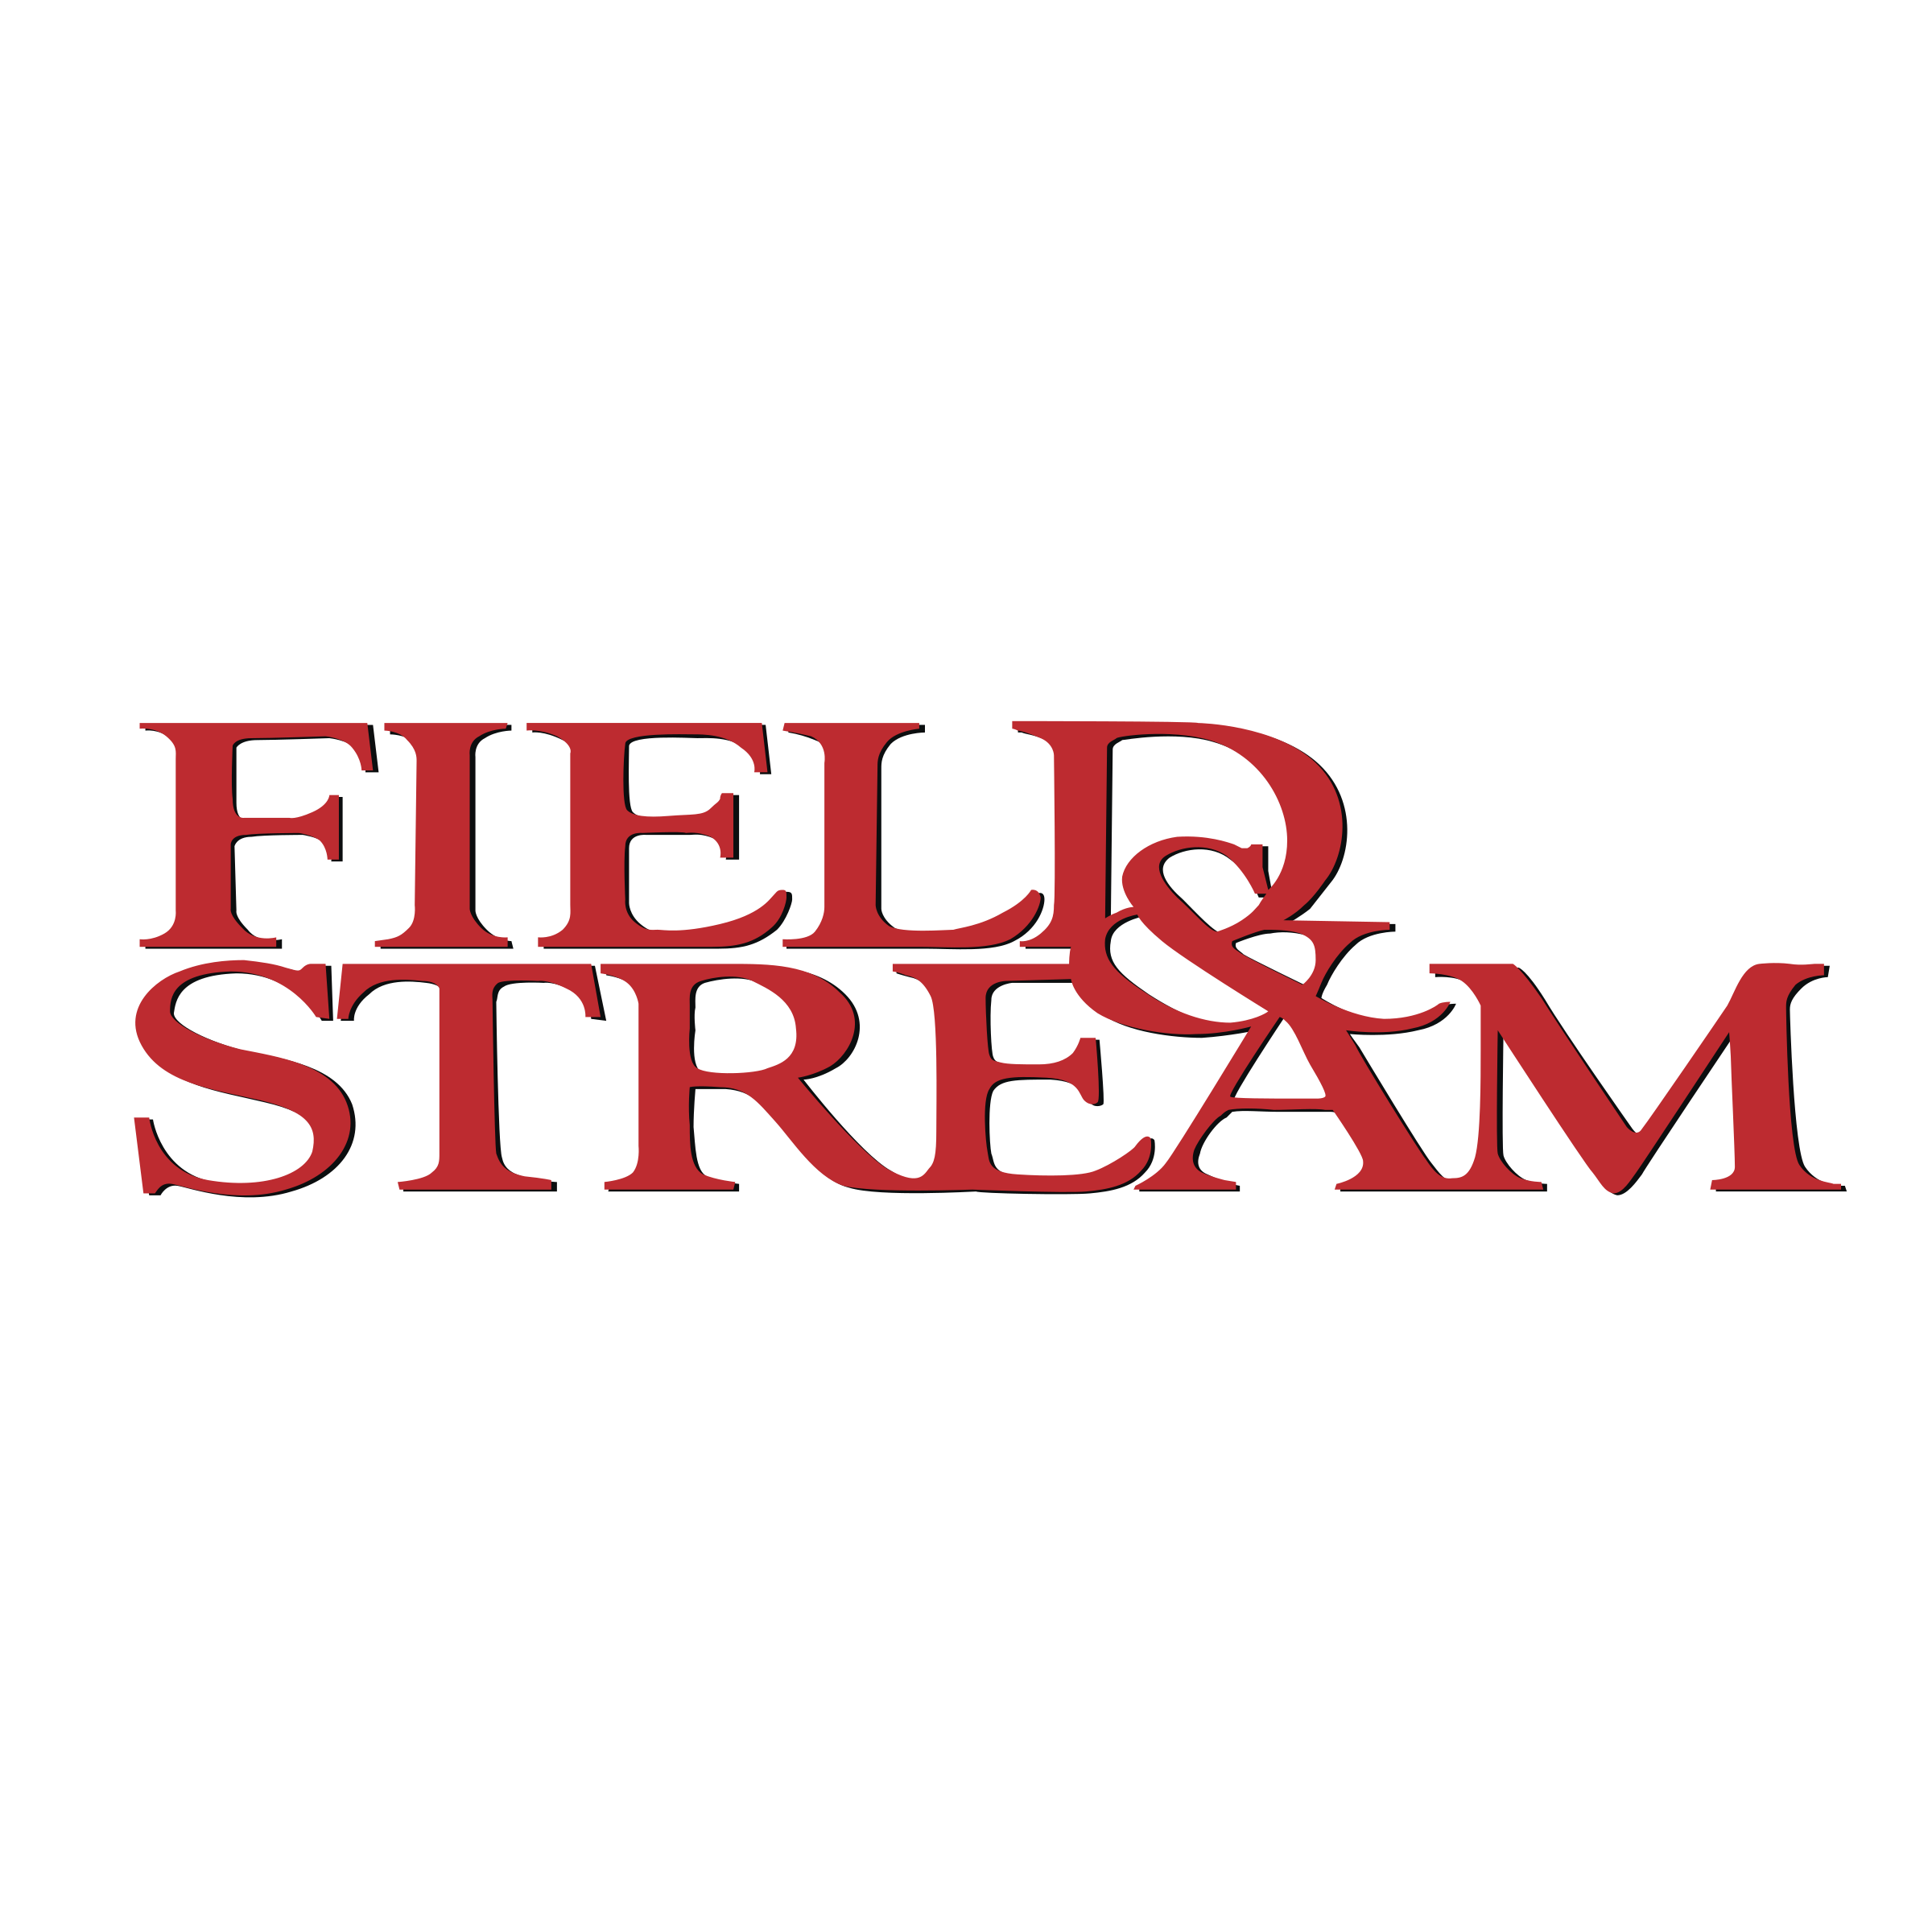 field-stream-logo-png-transparent.png